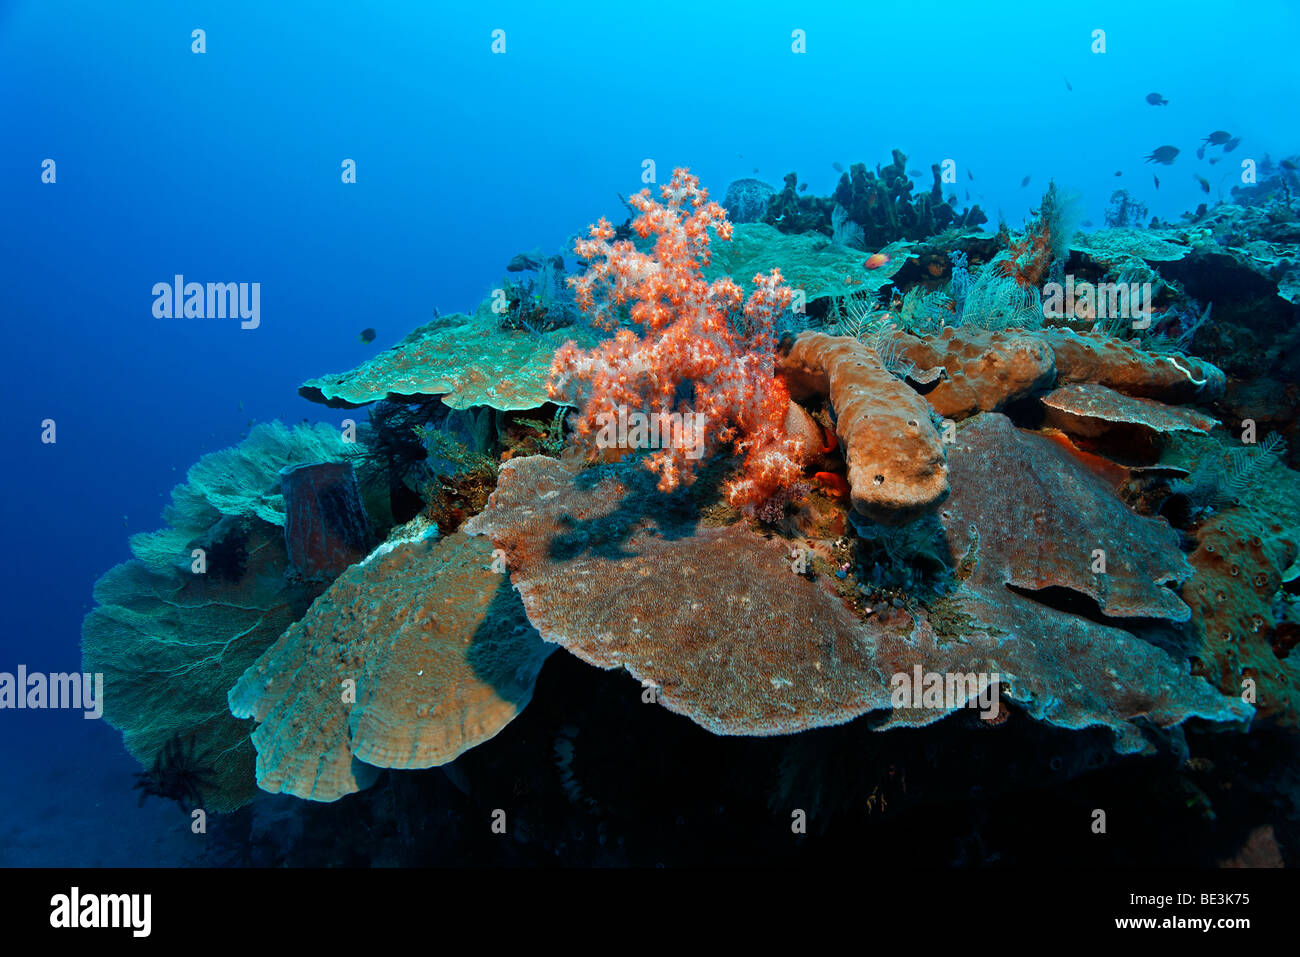 Coral reef with different kind of corals, Kuda, Bali, Indonesia, Pacific Ocean - Stock Image